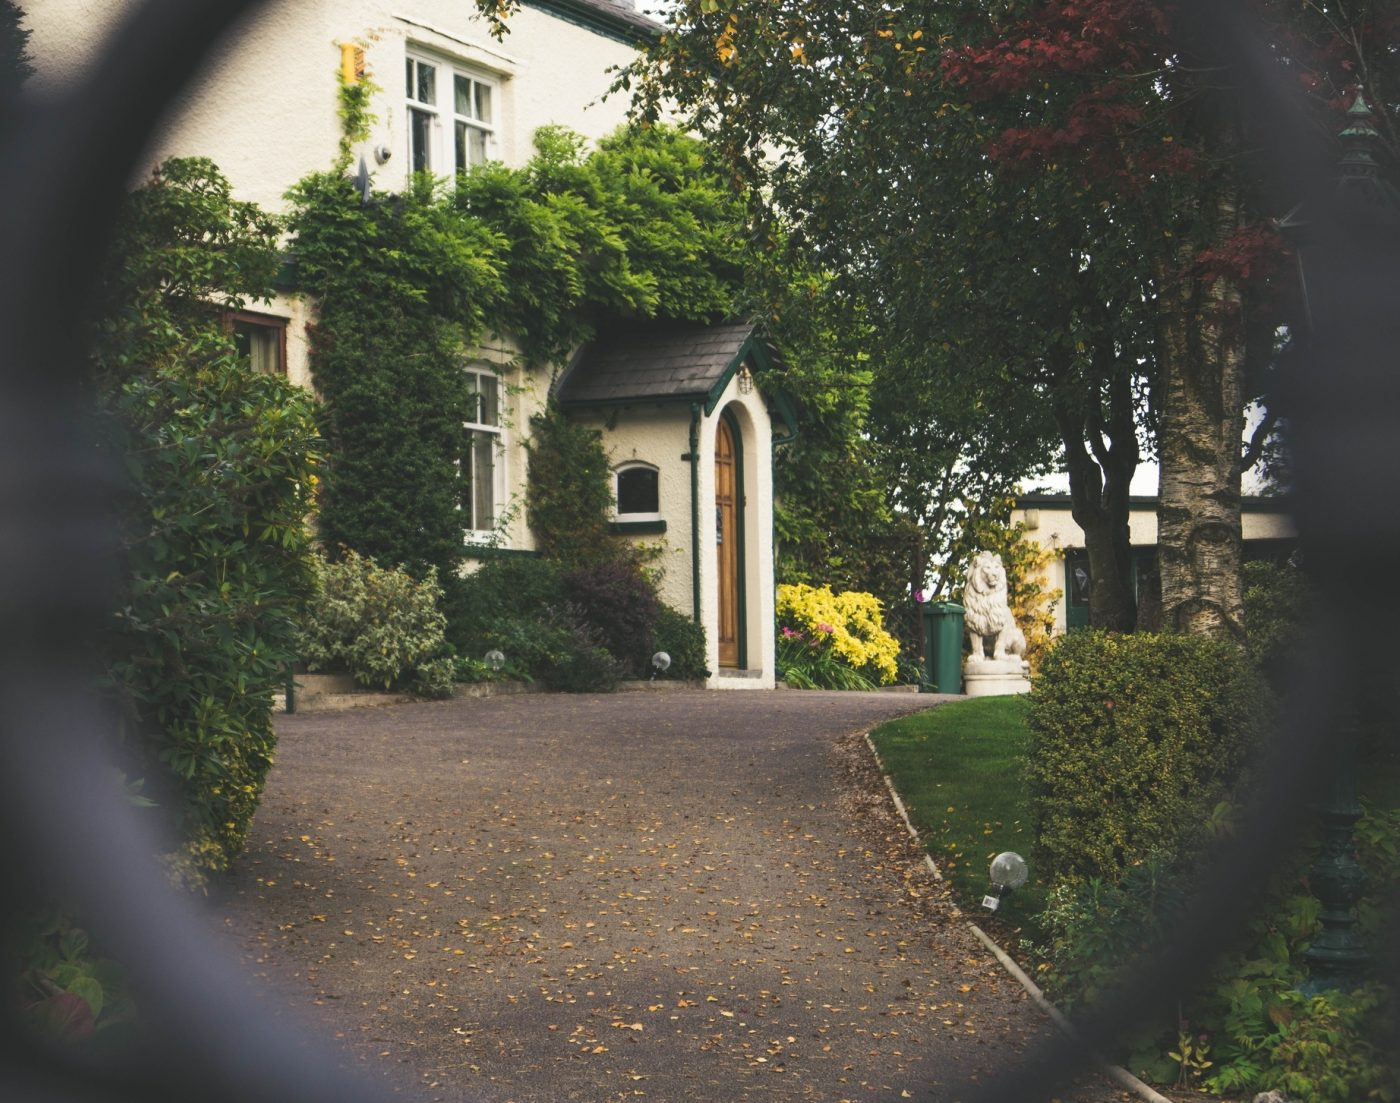 driveway leading up to house covered in green shrubbery